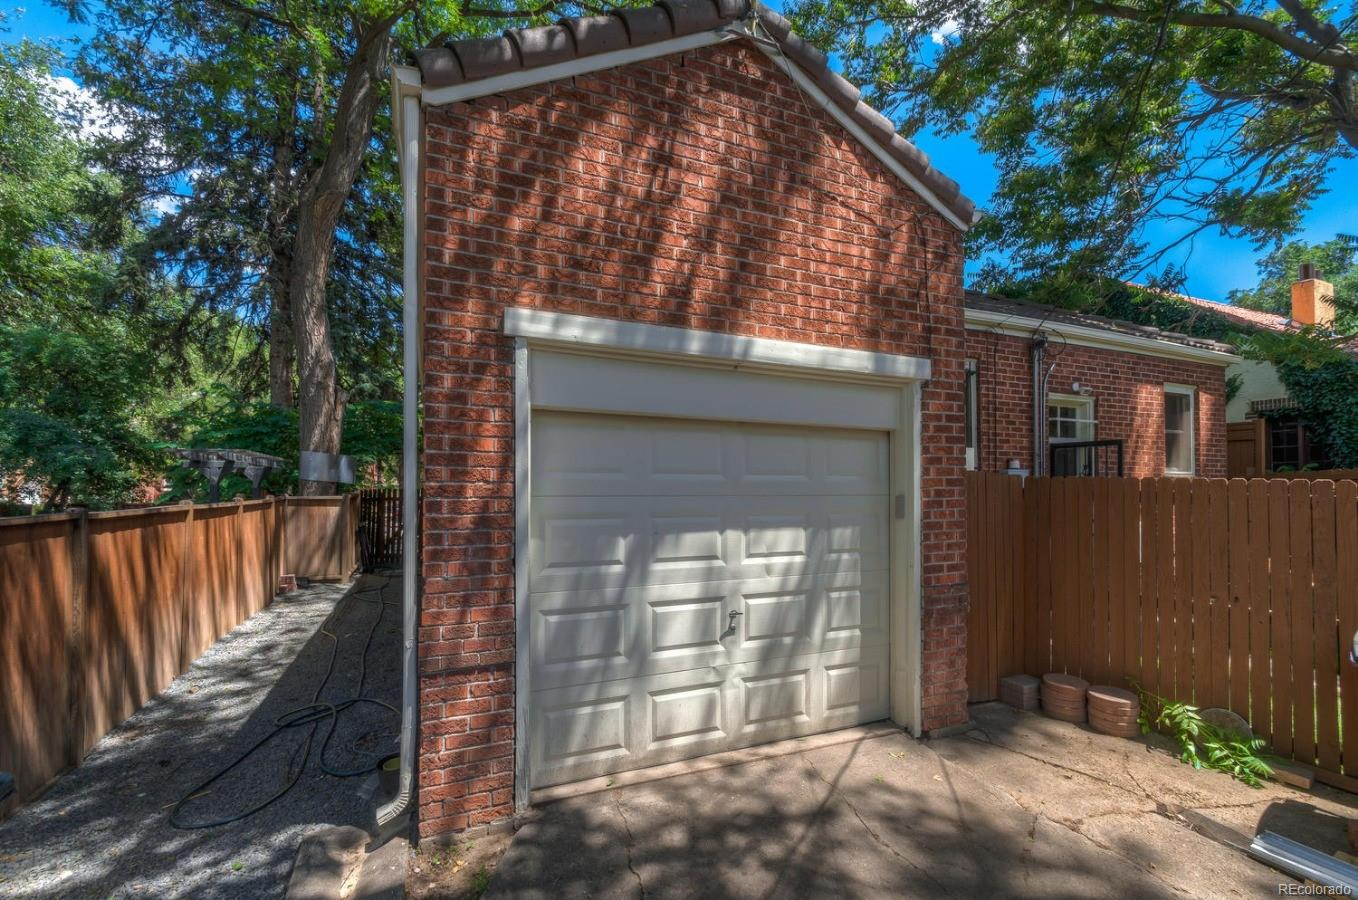 1 Car Detached Garage accessed by alley.